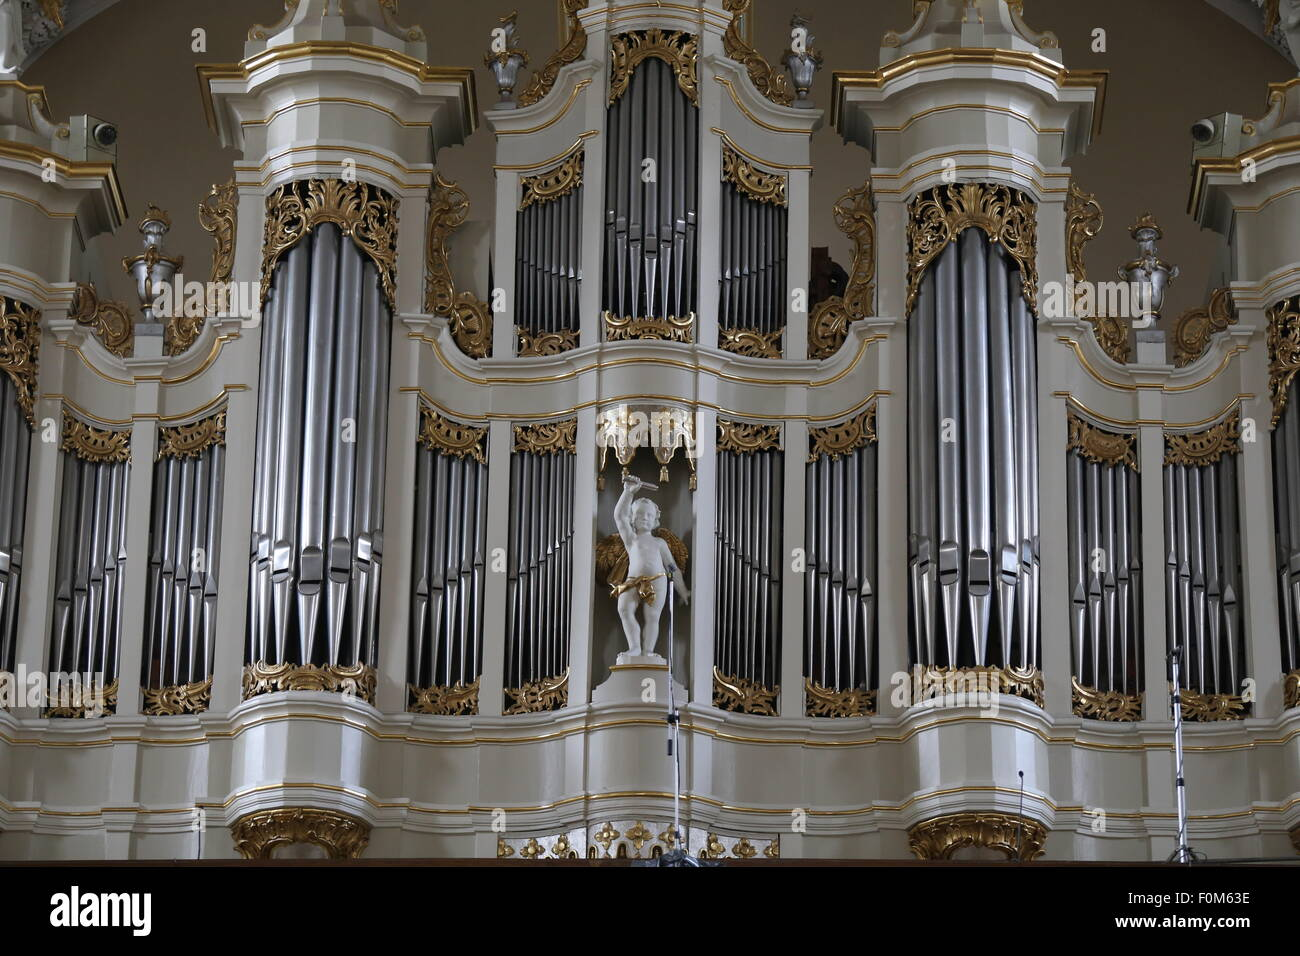 Baroque organ in the Cathedral of Vilnius.Lithuania,Europe Stock Photo